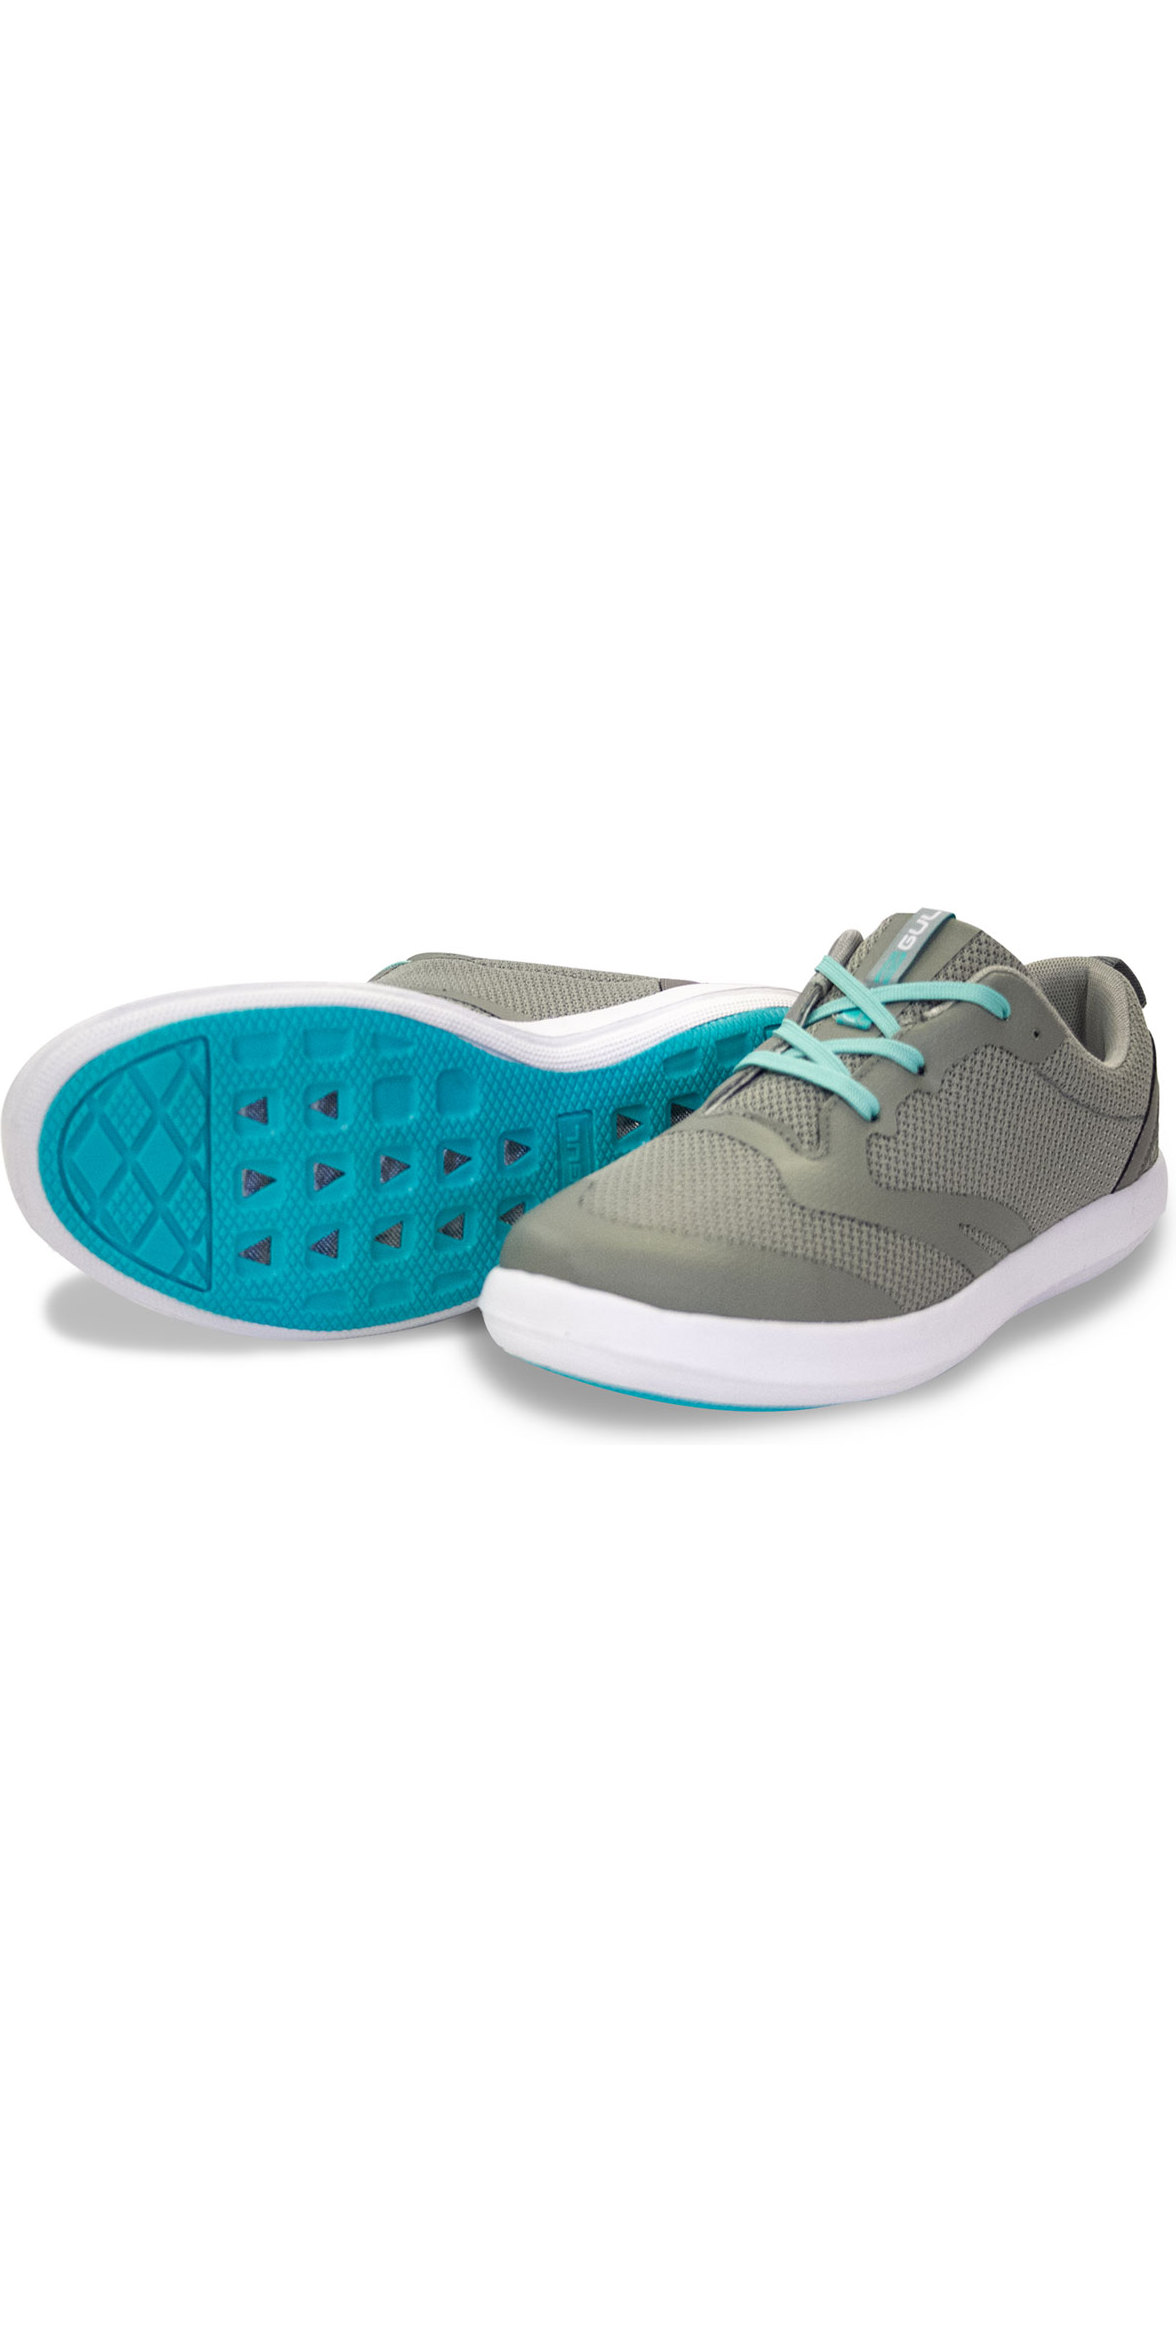 2020 Gul Aqua Grip SUP Shoe Grey DS1004-B3